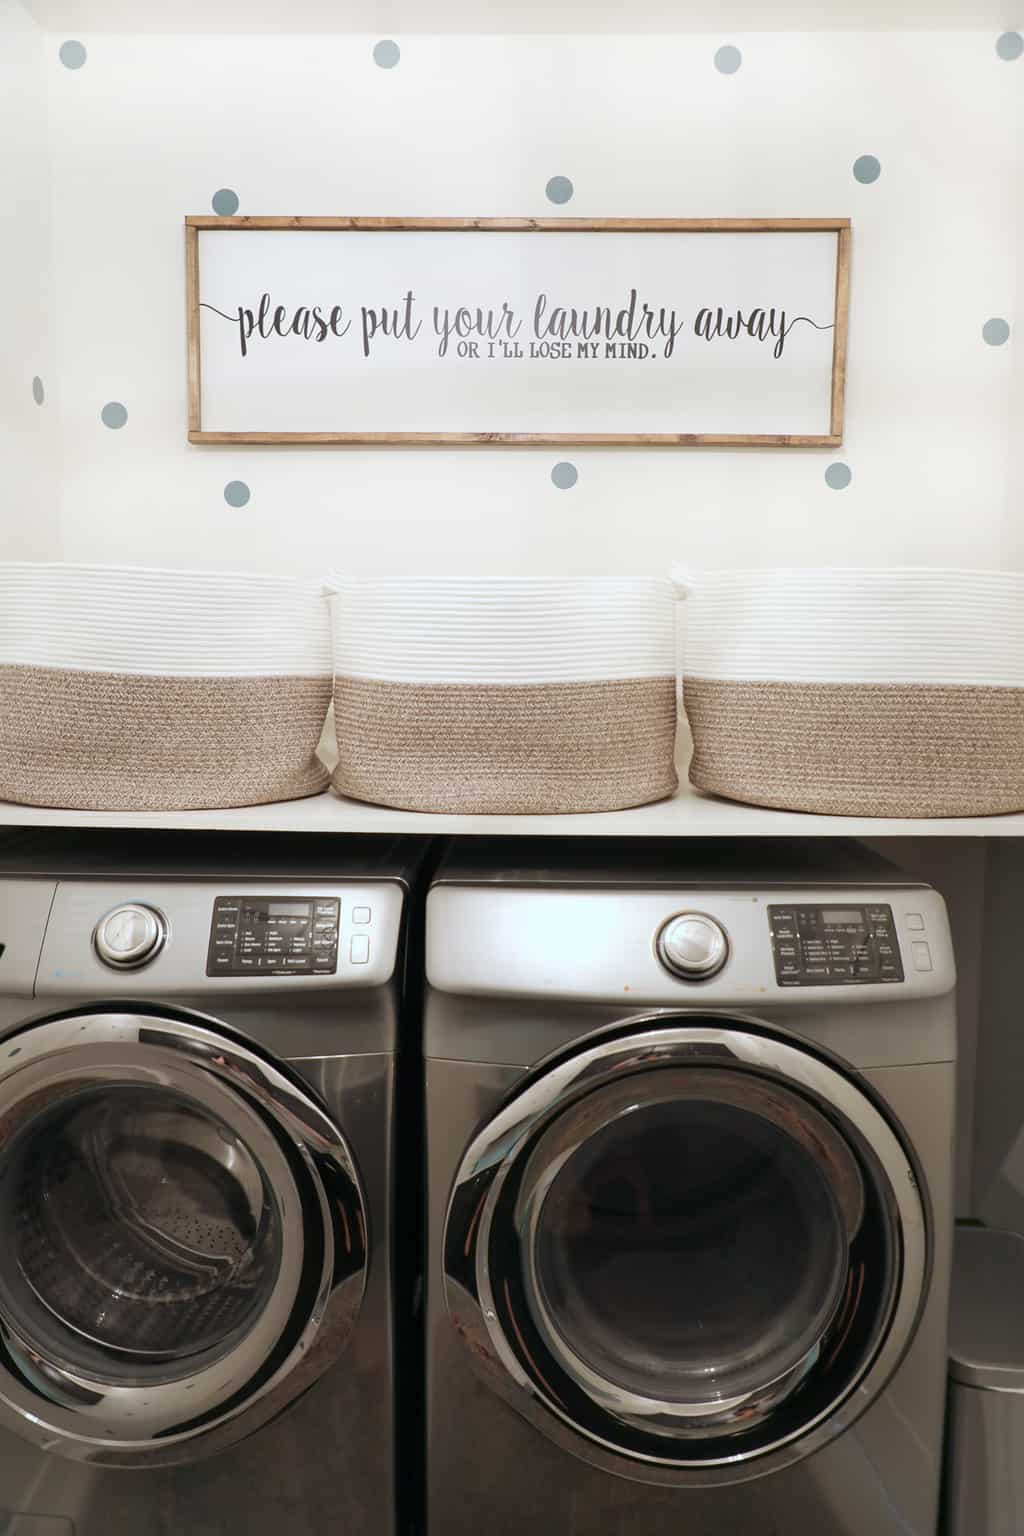 funny laundry room sign over baskets on shelf and washer dryer